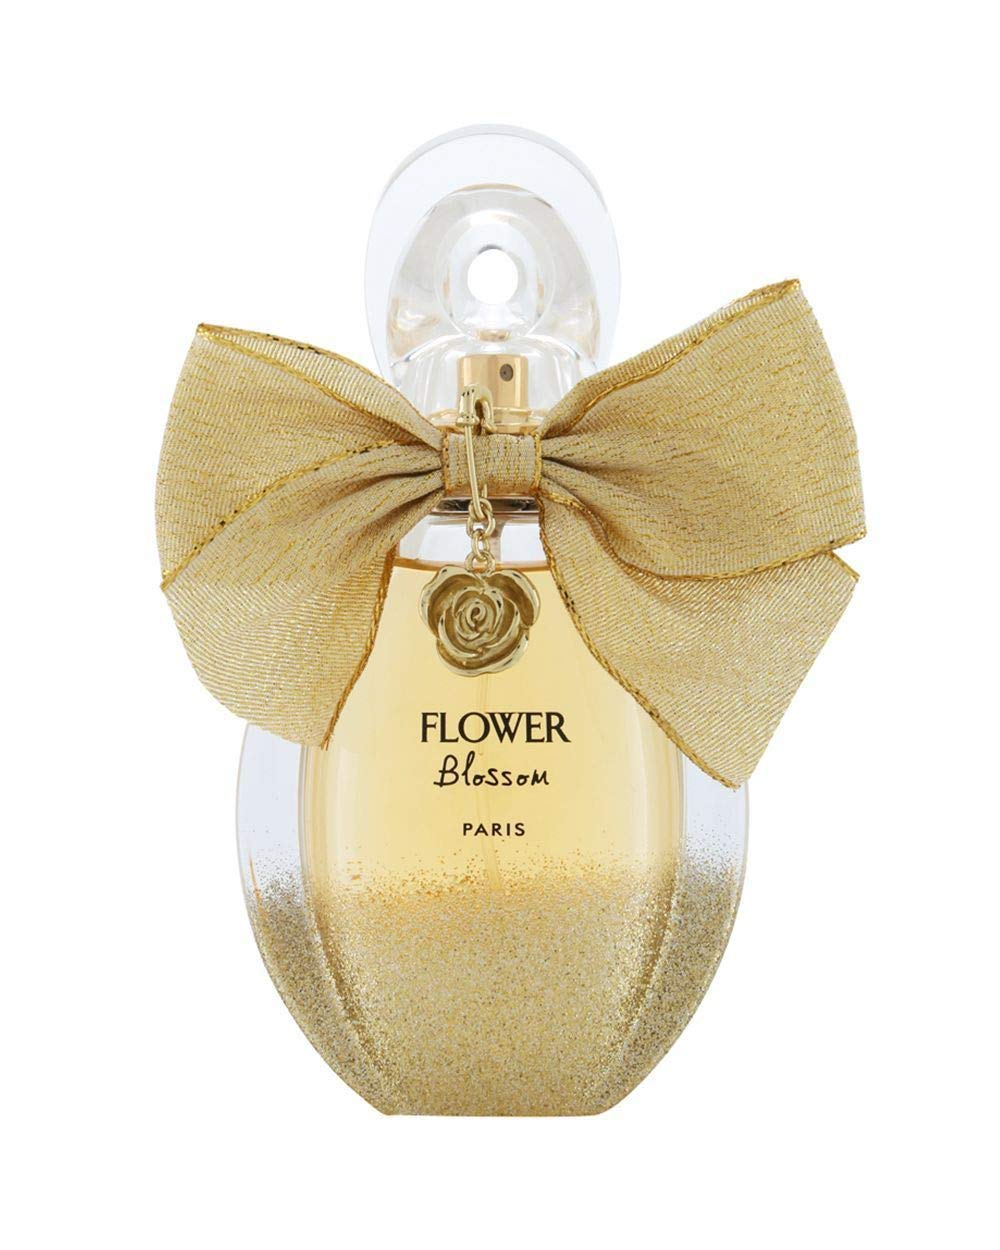 FLOWER BLOSSOM BY GEMINA B GEPARLYS FOR 8 PERFUME WOMEN 2.8 Free Shipping Cheap All stores are sold Bargain Gift OZ